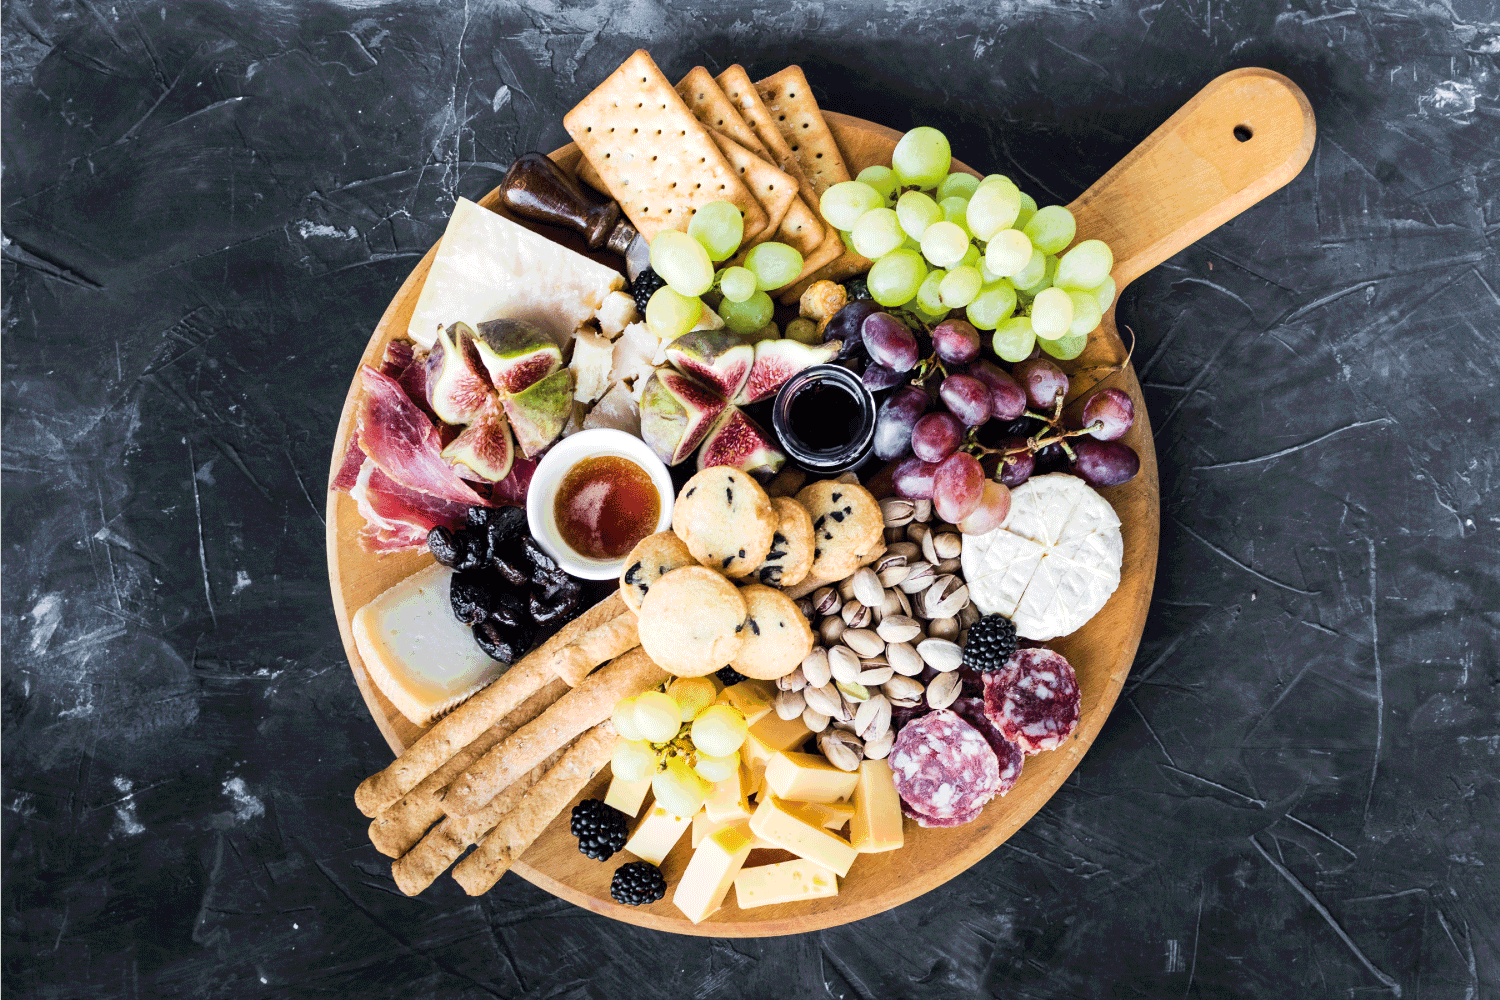 Charcuterie board. Cheese platter: Parmesan, maasdam, camembert, cheddar, gouda with prosciutto, salami, fruits and nuts. Assortment of tasty appetizers or antipasti